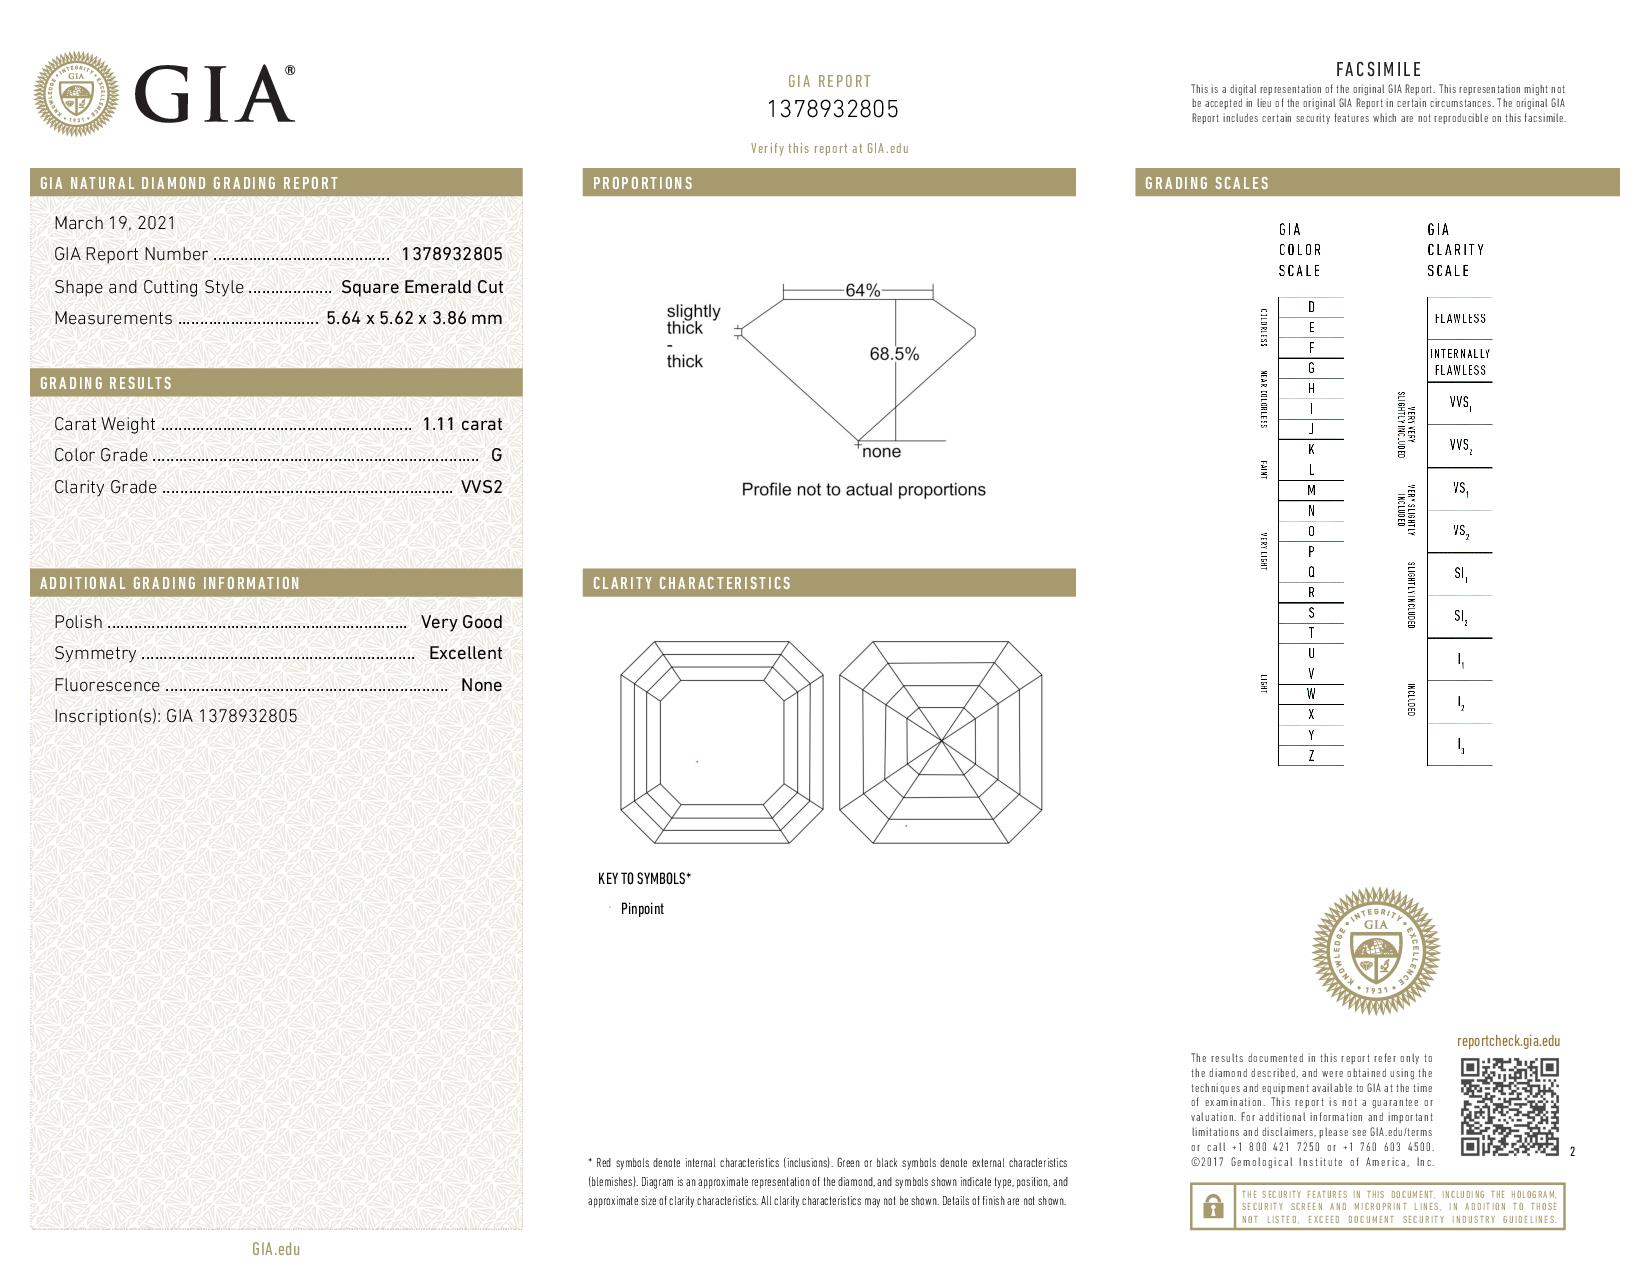 This is a 1.11 carat asscher shape, G color, VVS2 clarity natural diamond accompanied by a GIA grading report.